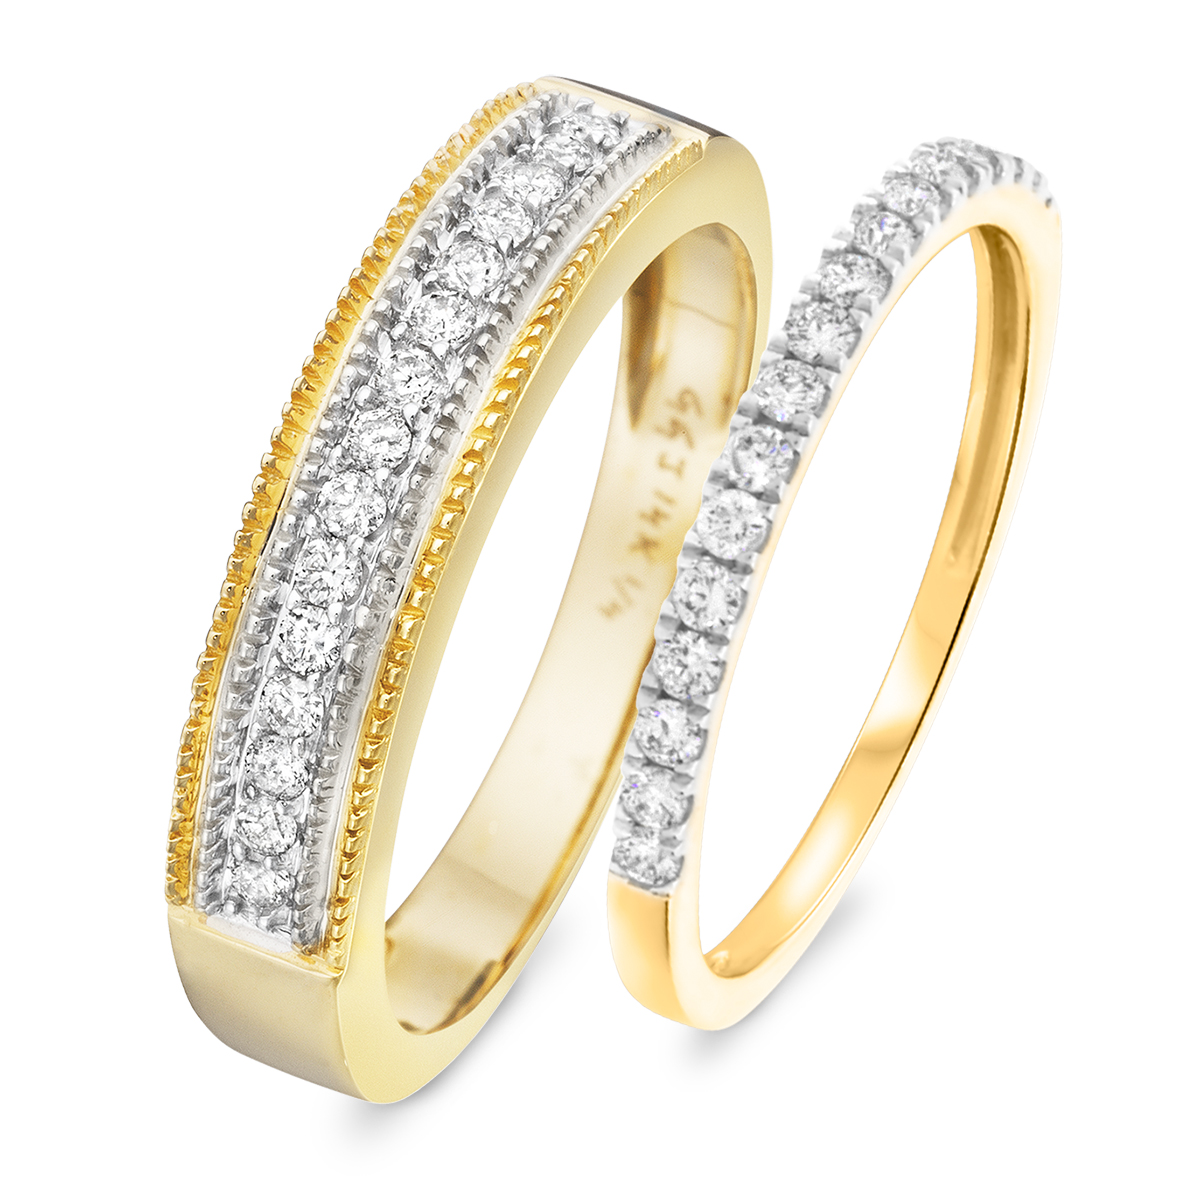 1/2 Carat T.W. Round Cut Diamond His and Hers Wedding Band Set 10K Yellow Gold